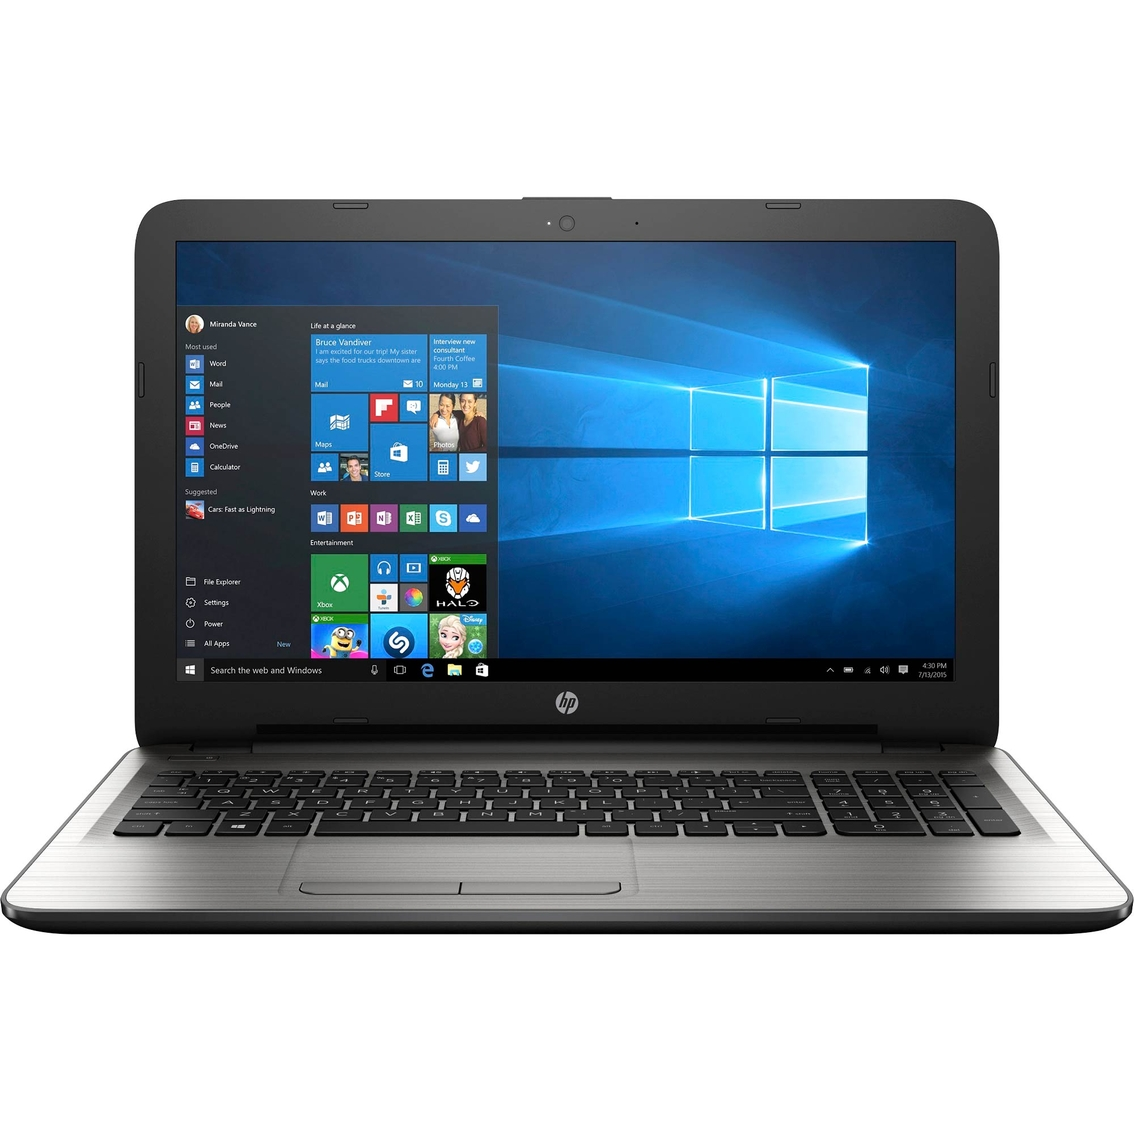 hp 15 ay077nr 15 6 laptop intel i5 6200u 2 3ghz 6gb ddr3 1tb windows 10 ebay. Black Bedroom Furniture Sets. Home Design Ideas